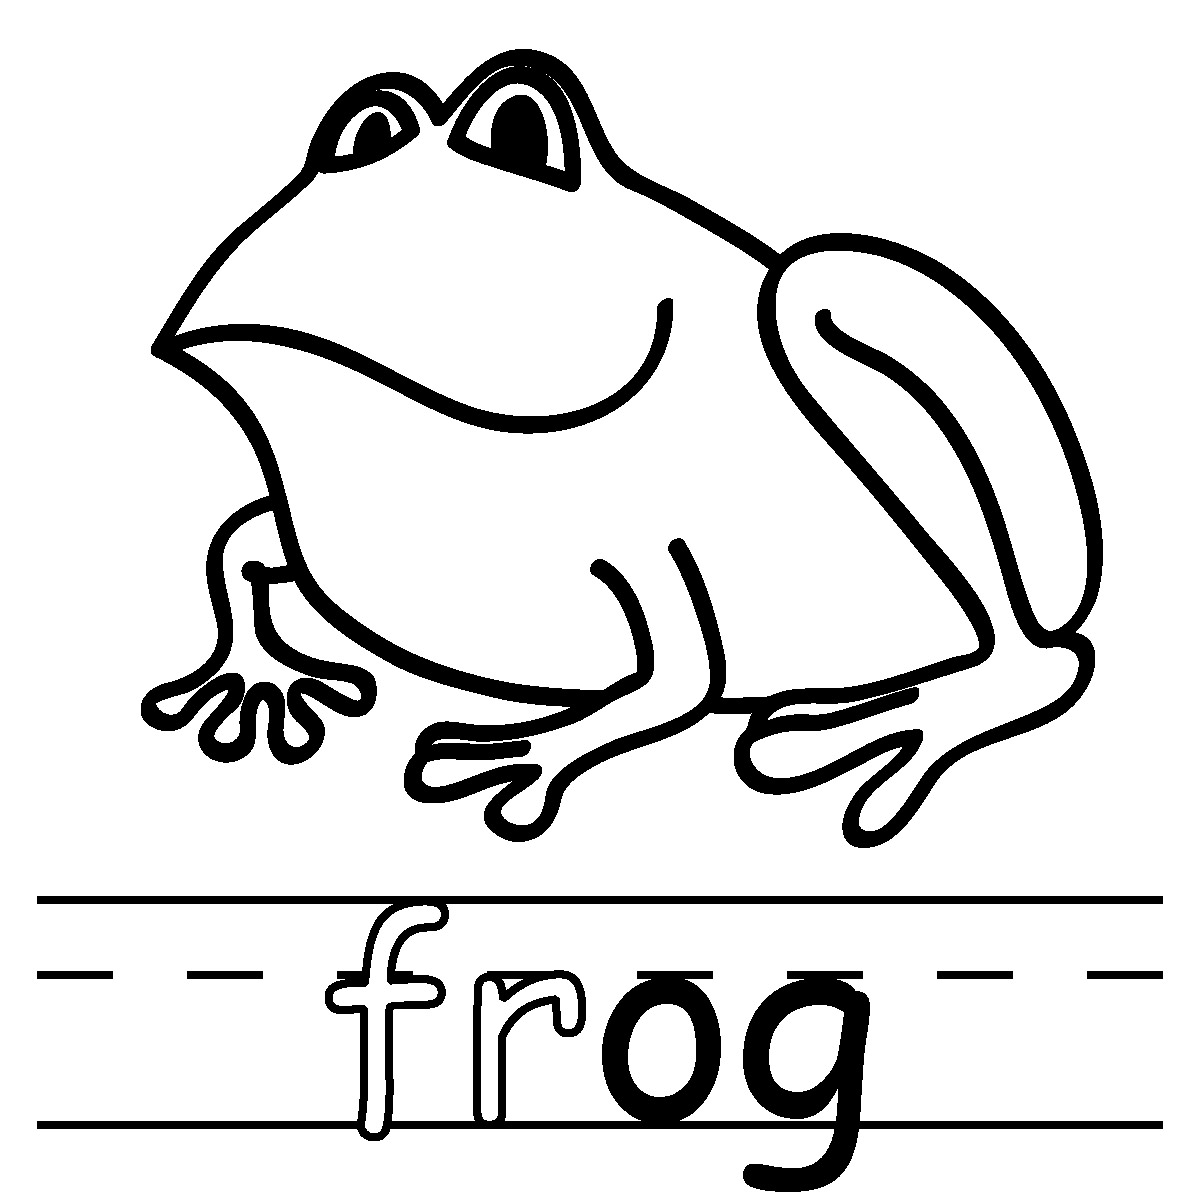 1200x1200 Tree Frog Clip Art Black And White Free Clipart